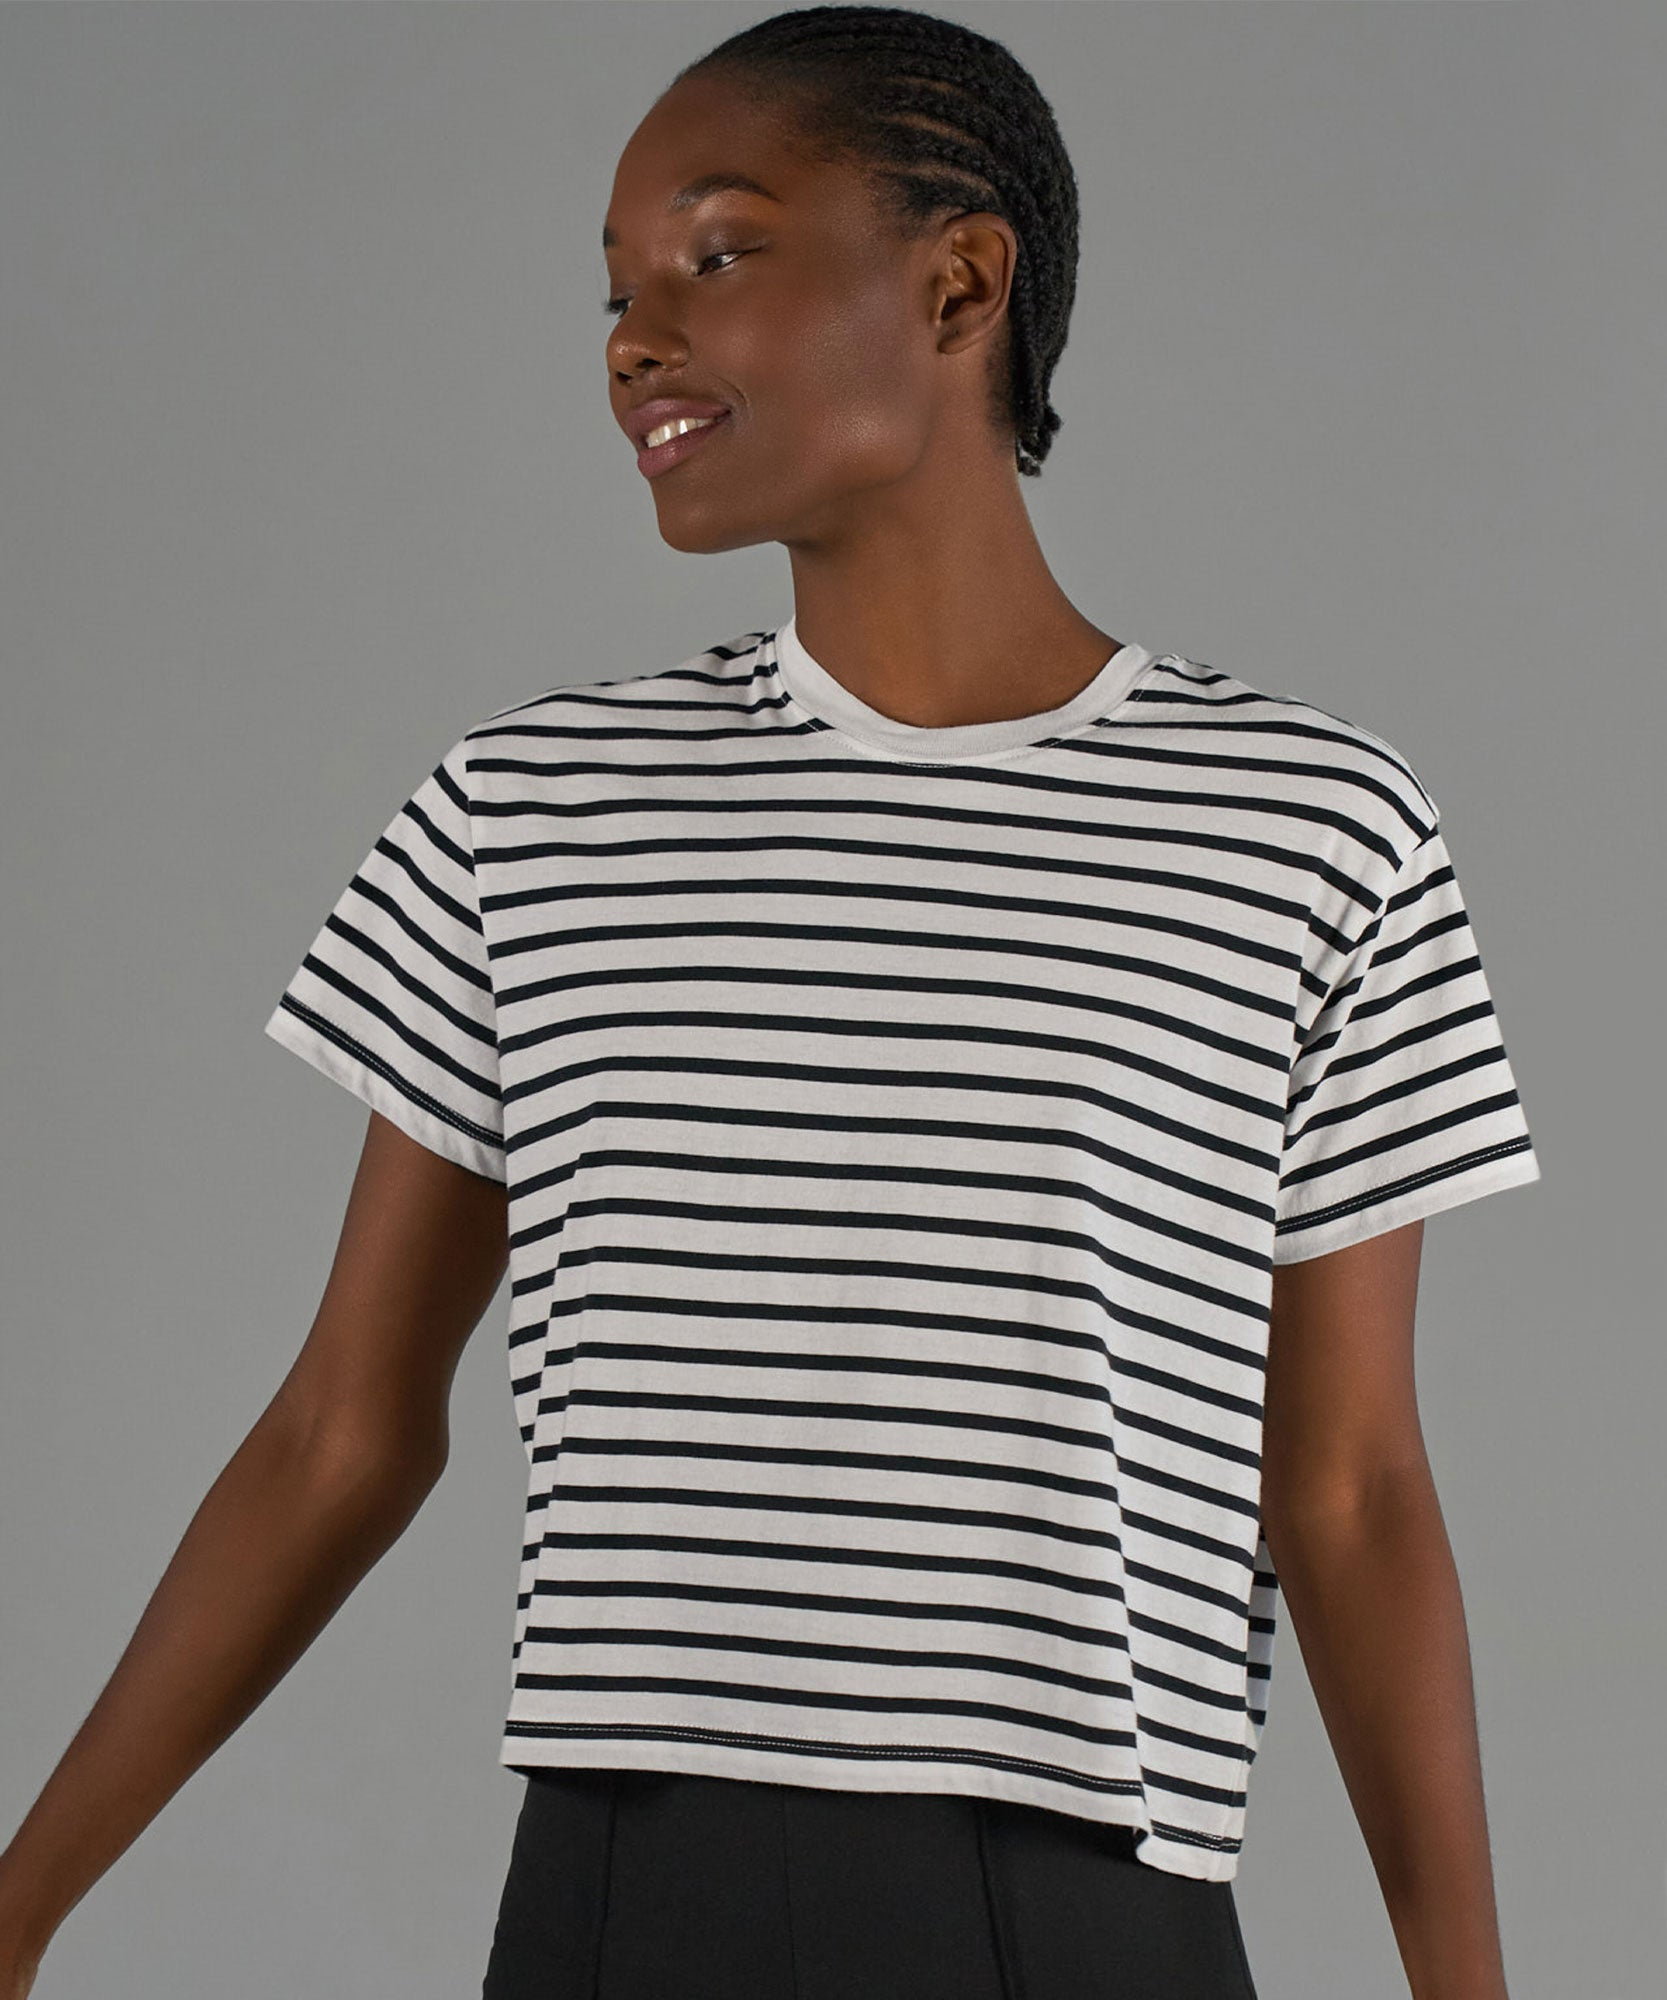 Black and White Stripe Classic Jersey Short Sleeve Boy Tee - Women's Cotton Short Sleeve T-shirt by ATM Anthony Thomas Melillo